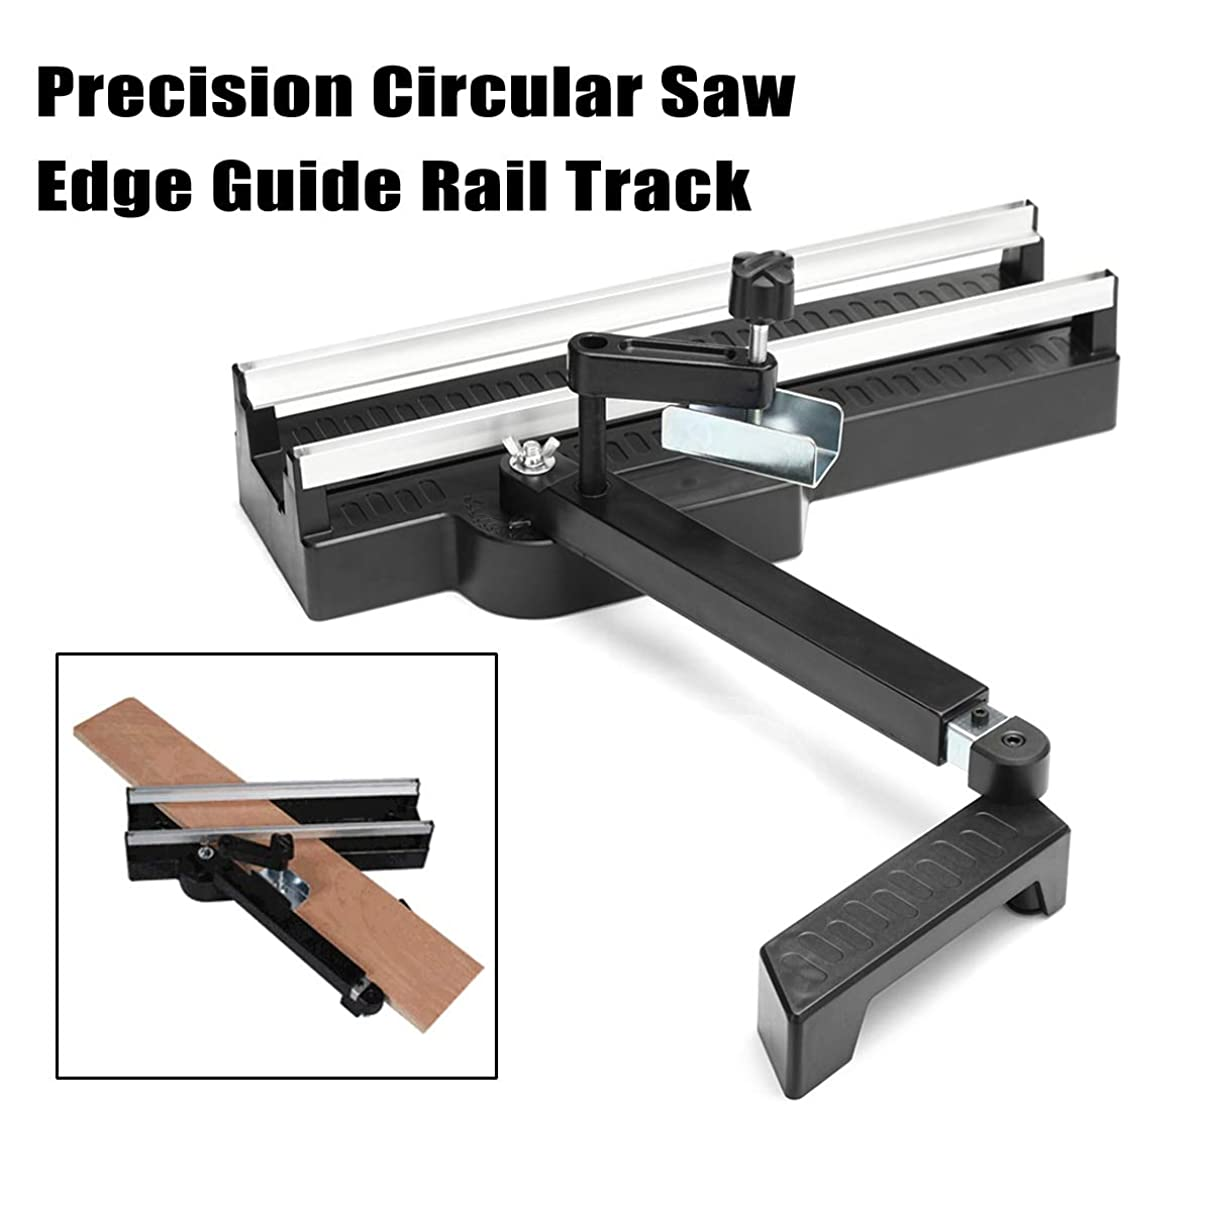 Bestchoice - 415mm Precision Circular Saw Edge Guide Rail Track Woodworking Cutting Tool Flat Edge Trimming Guide Rail